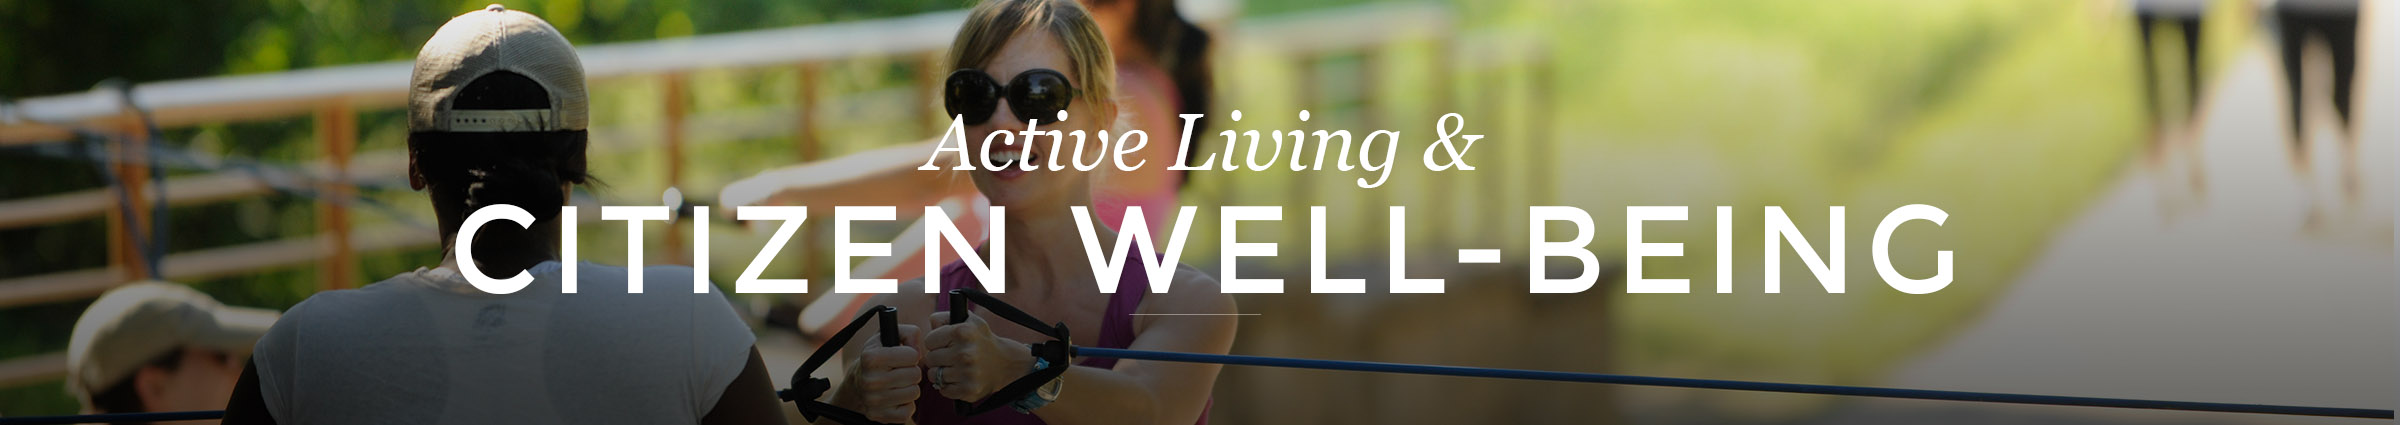 Active Living and Citizen Well-Being